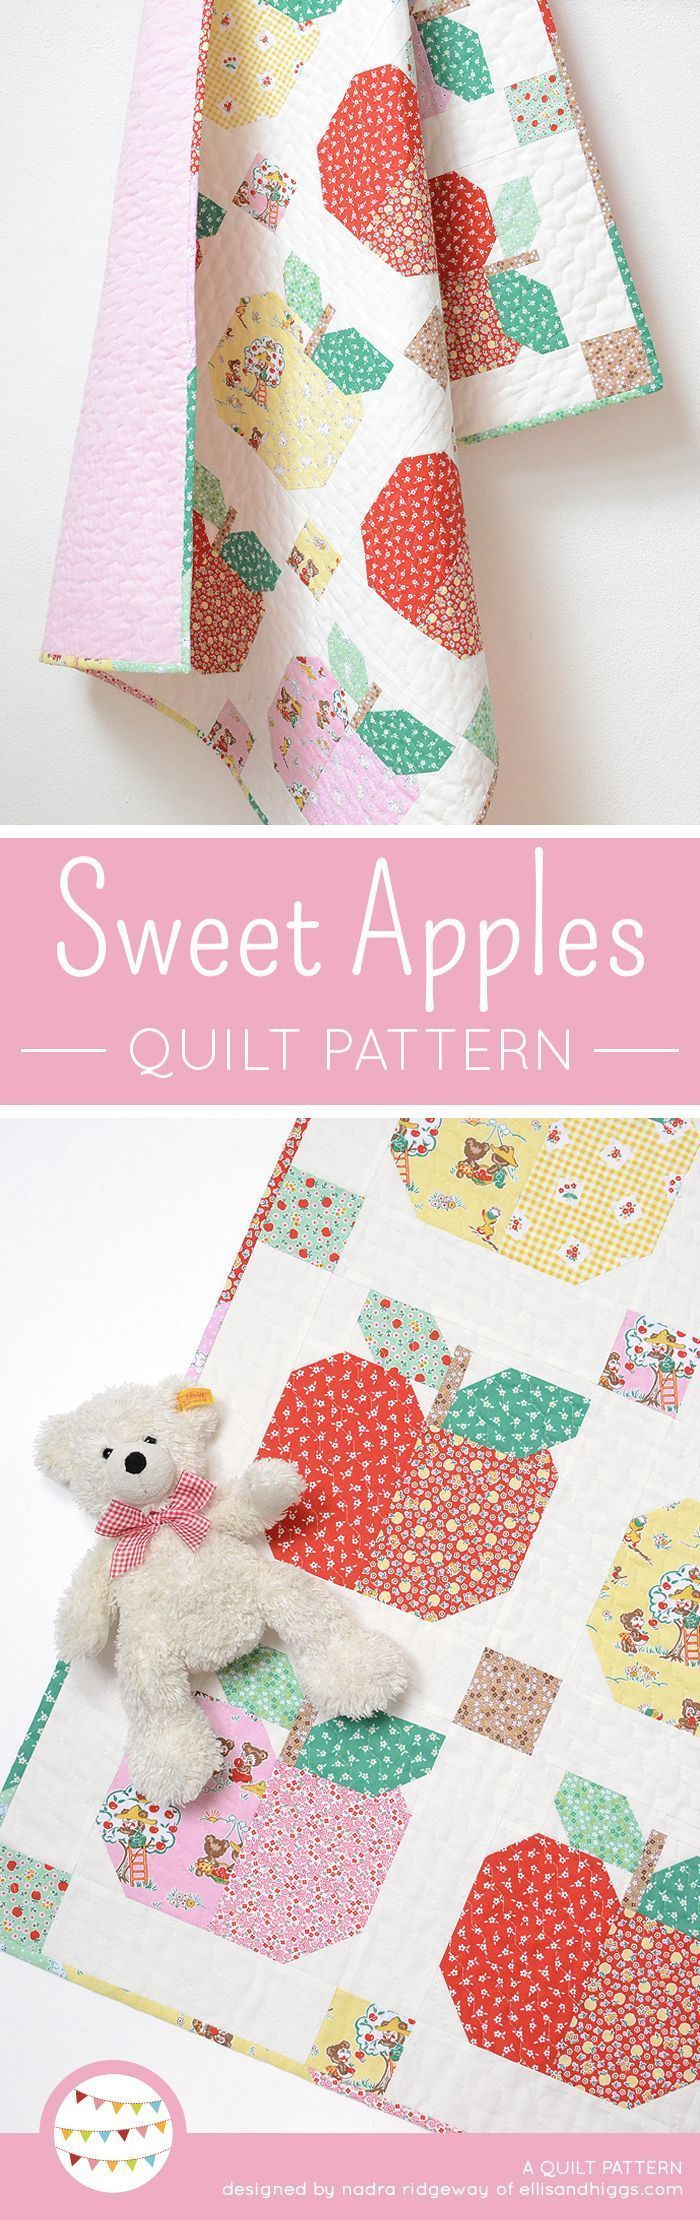 Sweet Apples baby quilt pattern by Nadra Ridgeway of ellis & higgs. Fast and easy quilt pattern, apple quilt block, apple quilt, wall quilt, baby quilt, pillow, cushion, sewing for kids, sewing for children, sewing for baby, kids room decor. Patchwork Anleitung, Anfänger, Nähanleitung, Baby Quilt, Wandbehand, Apfel Quilt Block, Geschenke fürs Baby, Geschenke fürs Kind, Geschenke nähen, Nähen für Kinder, Nähen fürs Baby, Kinderzimmer Dekoration, DIY